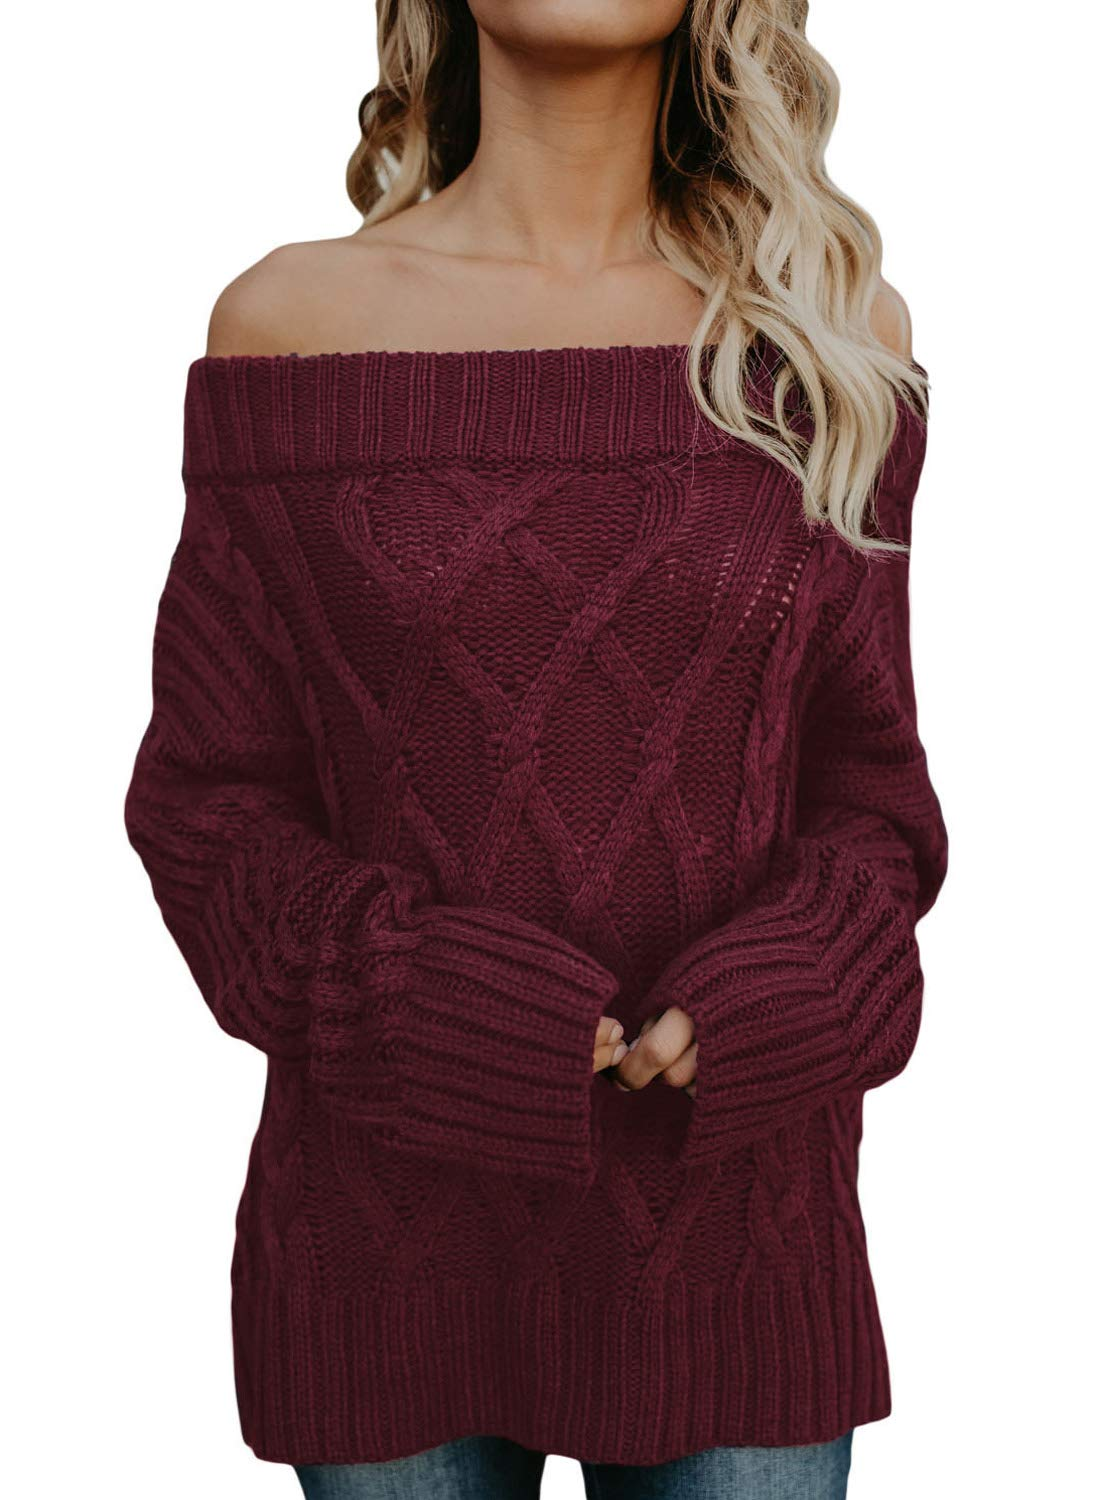 Dearlovers Women's Off Shoulder Casual Loose Knit Sweater Pullovers Red S